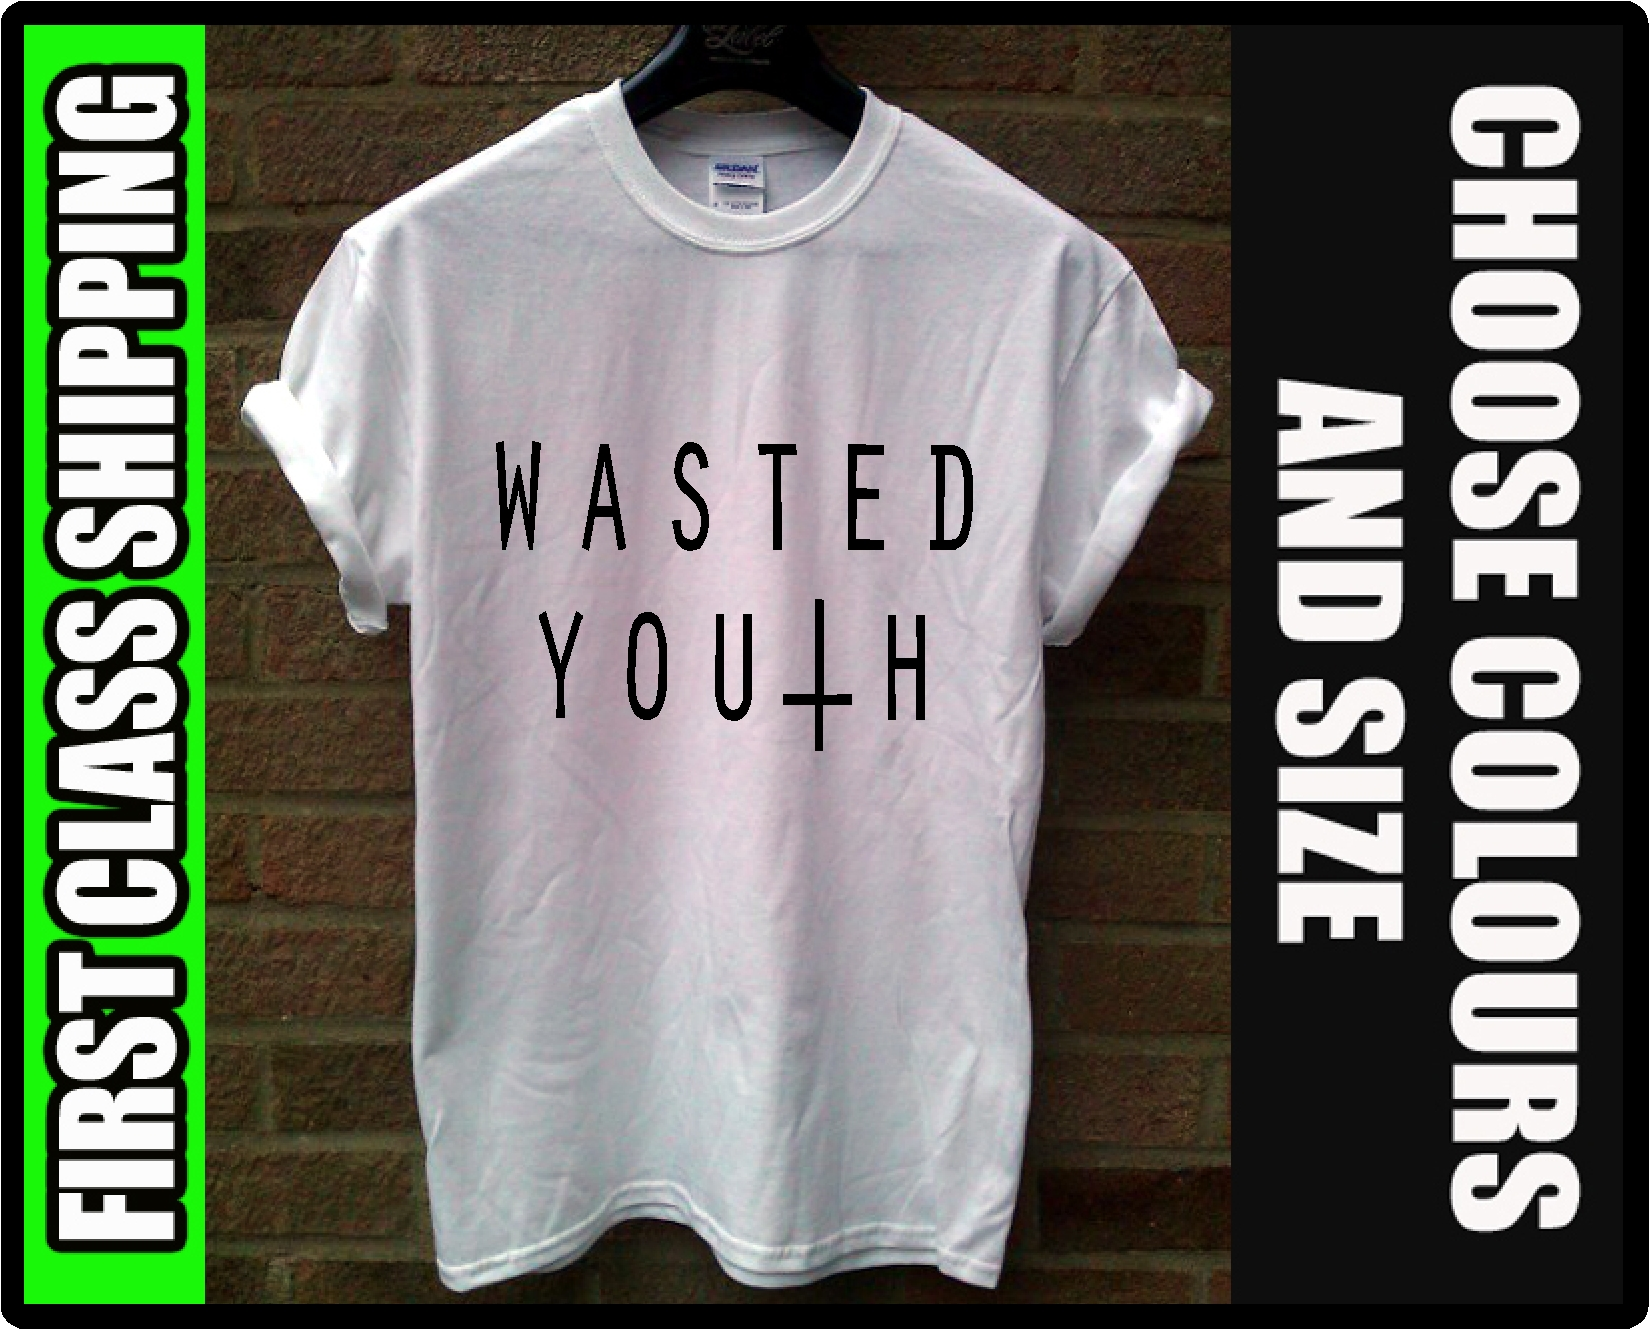 WASTED YOUTH T SHIRT INVERTED CROSS SWAG DOPE HIPSTER TOP RUM BNWT INDIE FUNNY